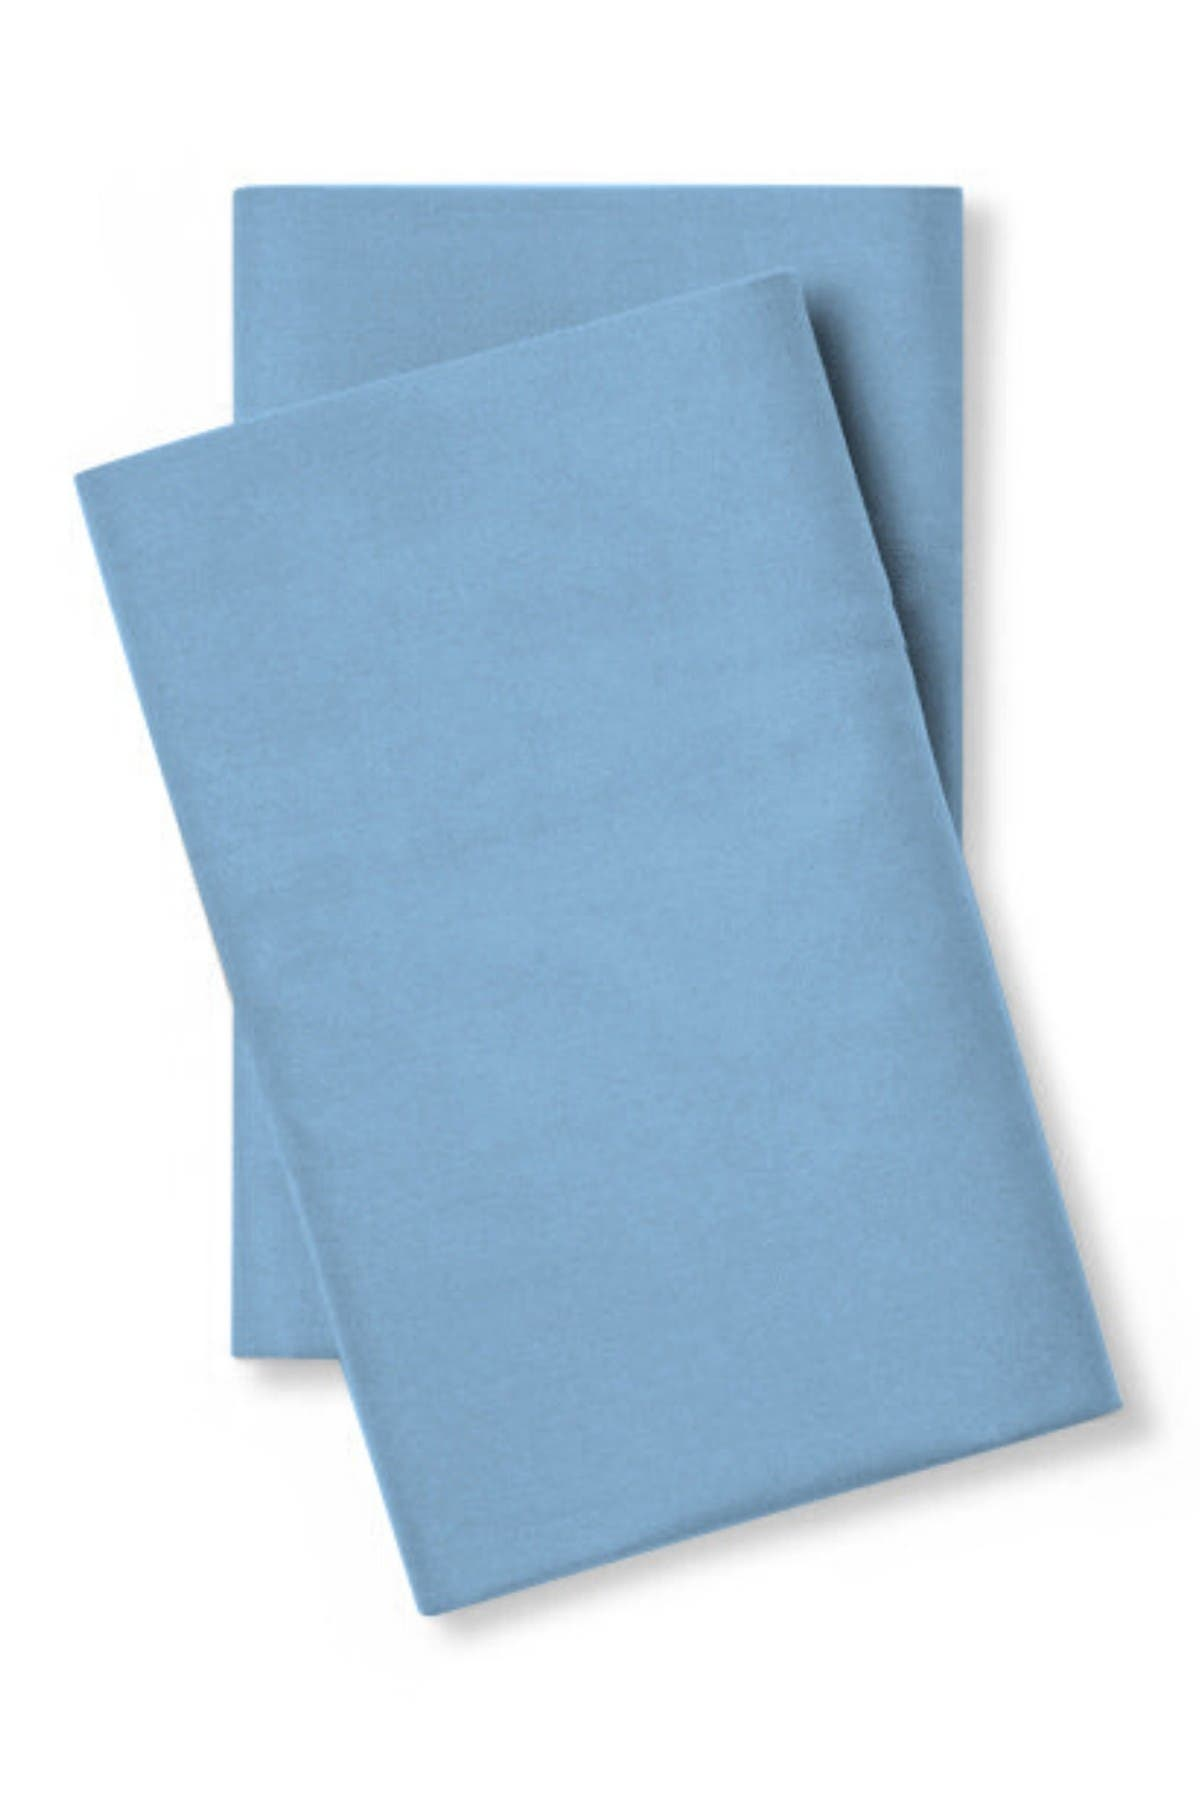 Image of Pillow Guy Luxe Soft & Smooth Tencel Pillowcase Pair - Set of 2 - King/Cal King - Cadet Blue